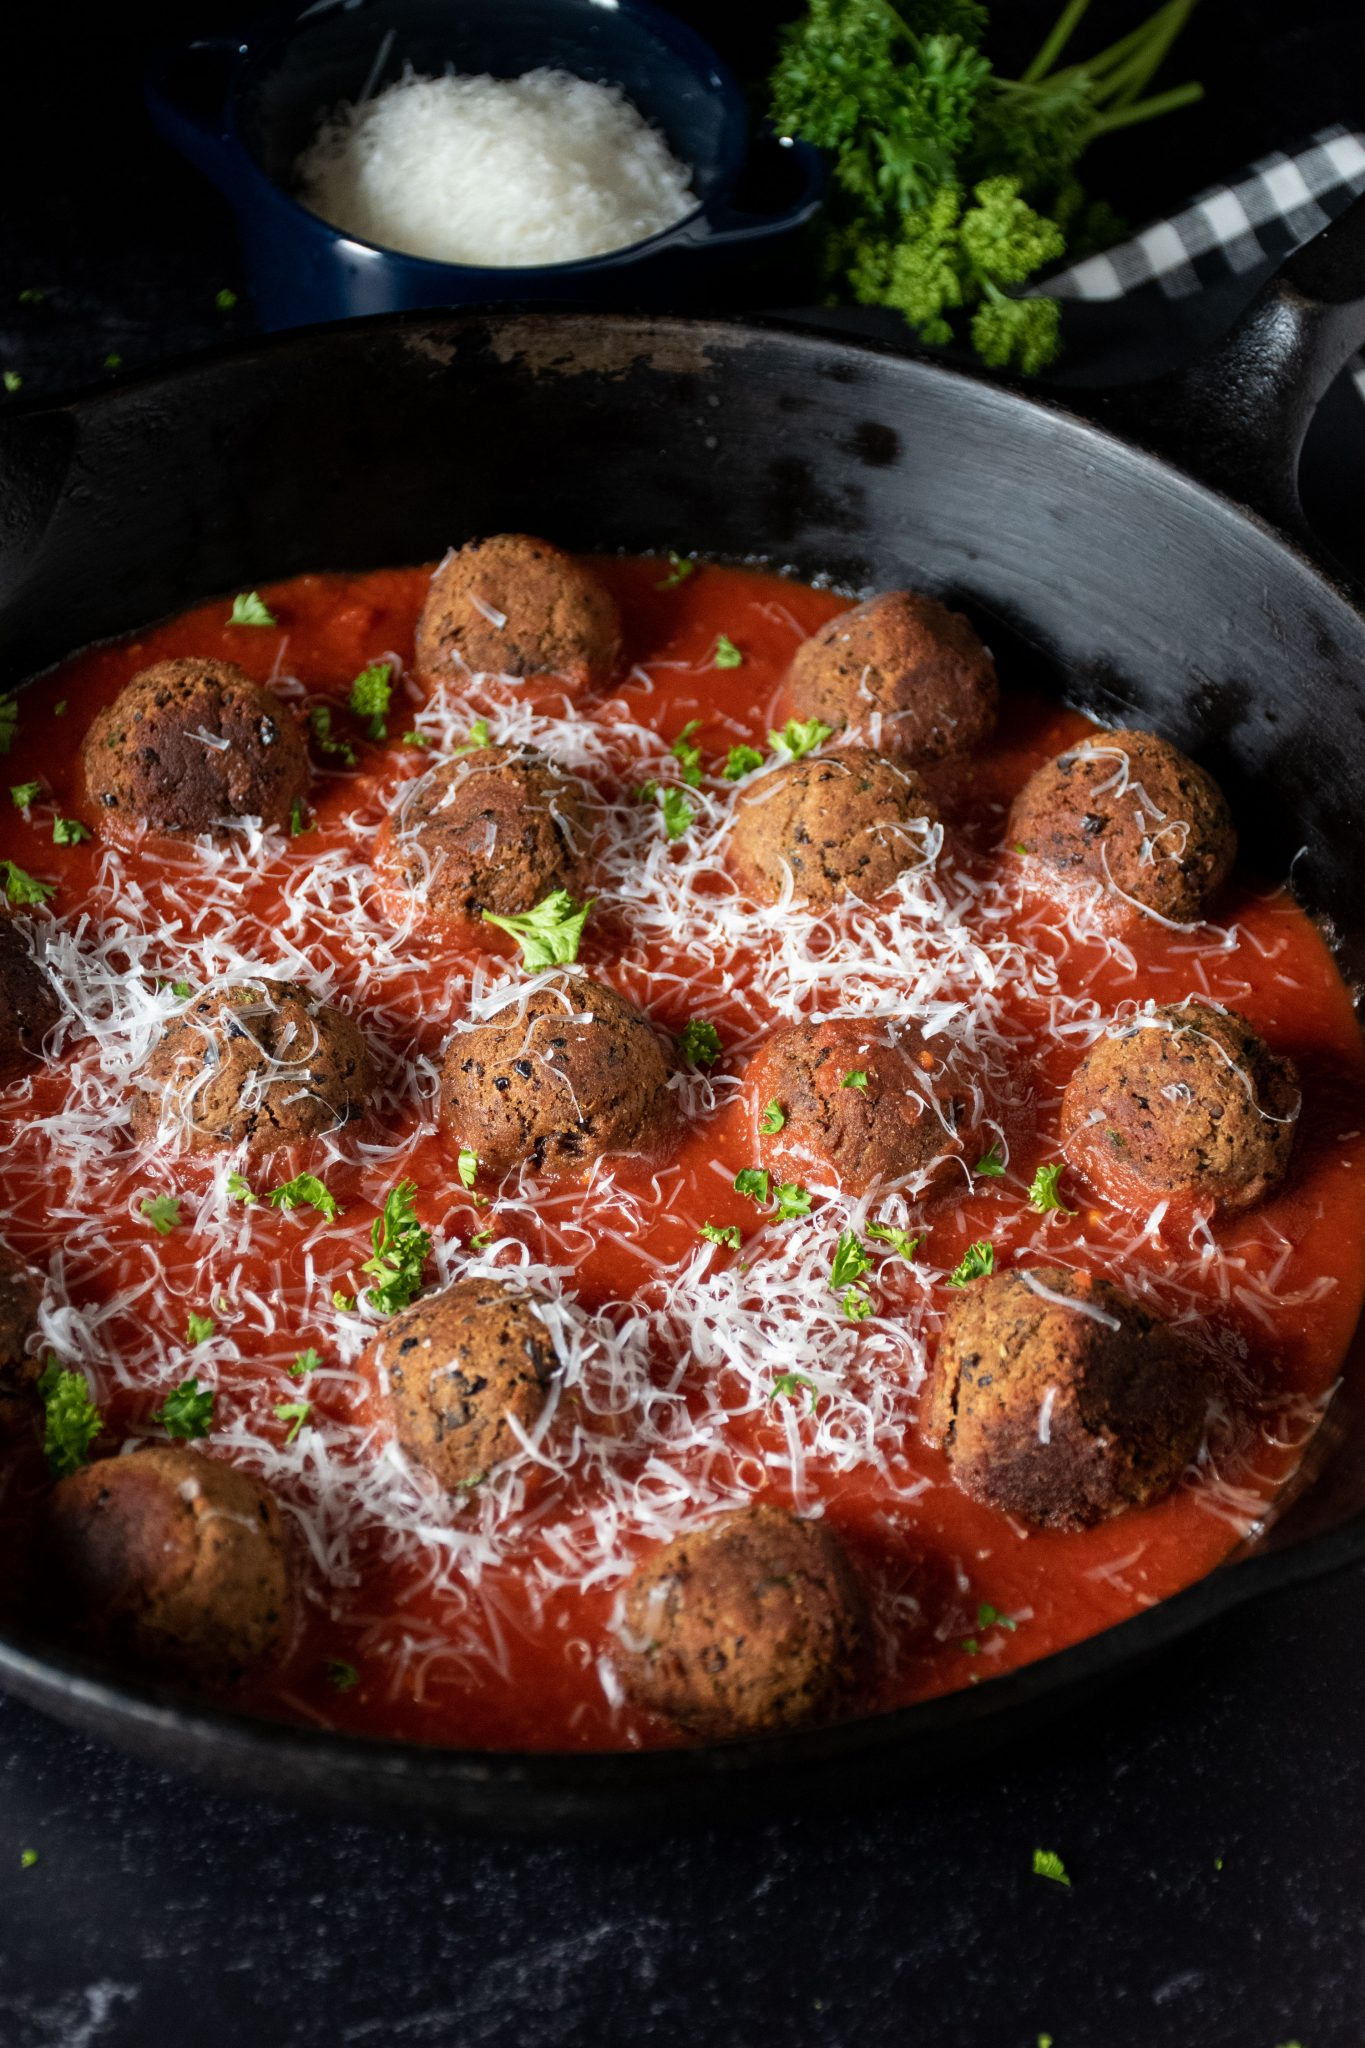 Skillet with meatballs made of black beans with marinara sauce.